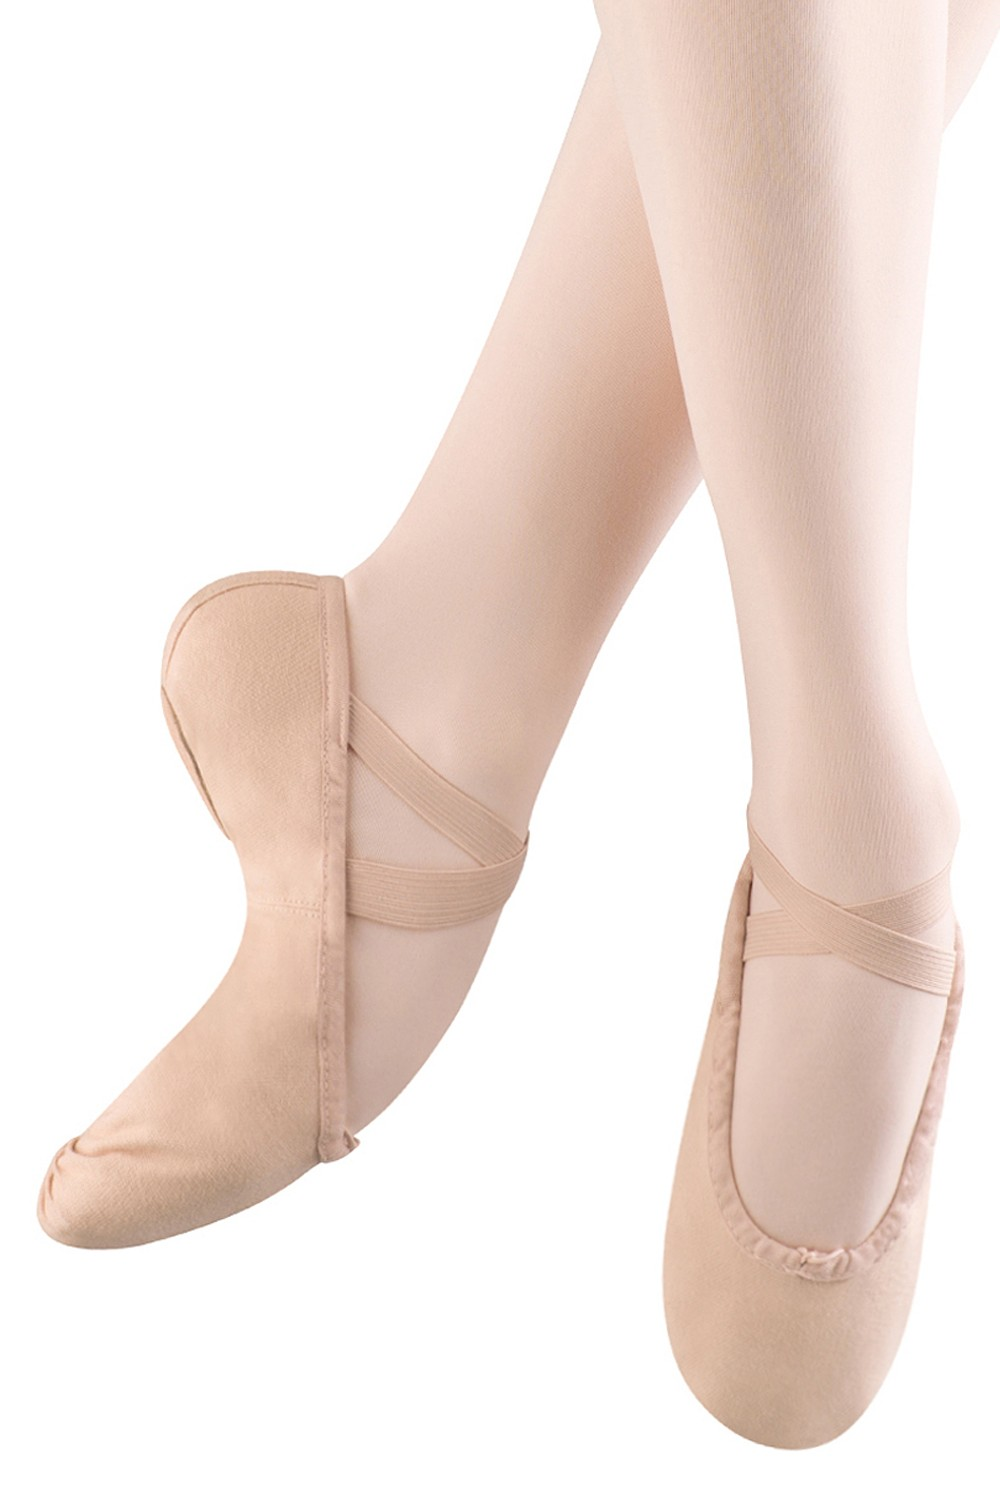 Cheap latin dance shoes, Buy Quality ballet shoes directly from China dance latin shoes Suppliers: Ballet Shoes With Heels Adult Dance Shoes Women Girls New Leather Latin Dance Shoes Practice Teacher Teaching Enjoy Free Shipping Worldwide! Limited Time Sale Easy Return/5(8).